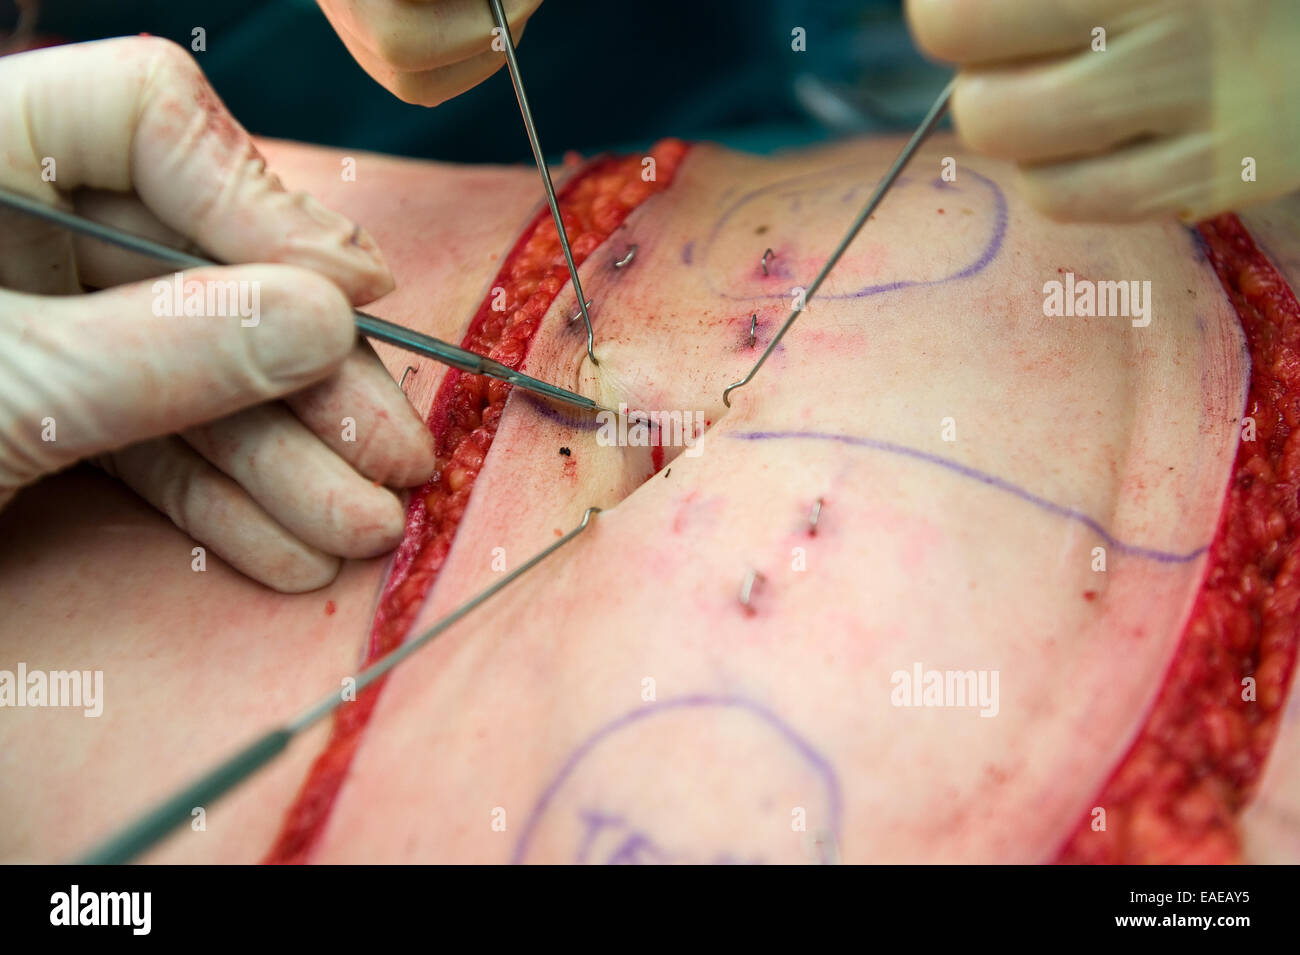 A surgeon making an incision near the belly button during an operation - Stock Image